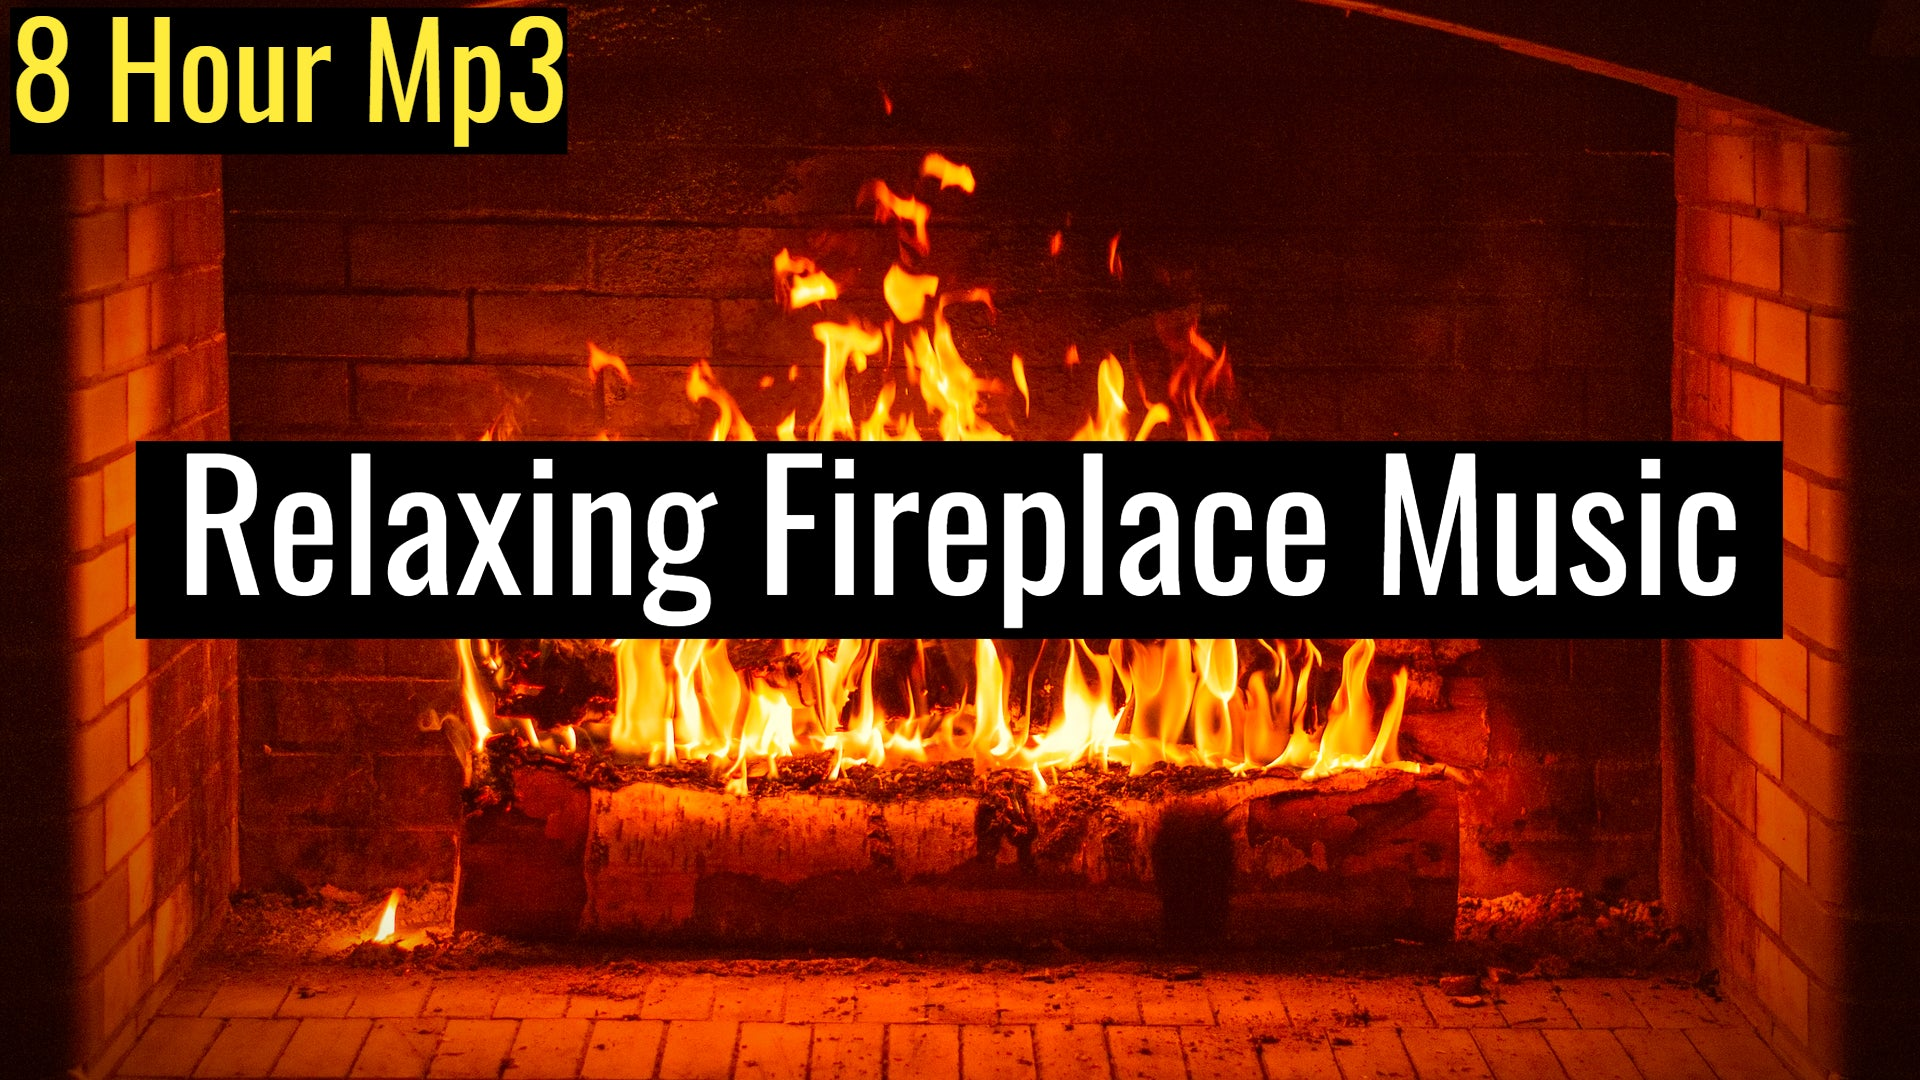 Fireplace Gathering, Relaxing Music with Sounds of Cracking Fire | 639Hz Harmonize Relationships (8 Hour Track)